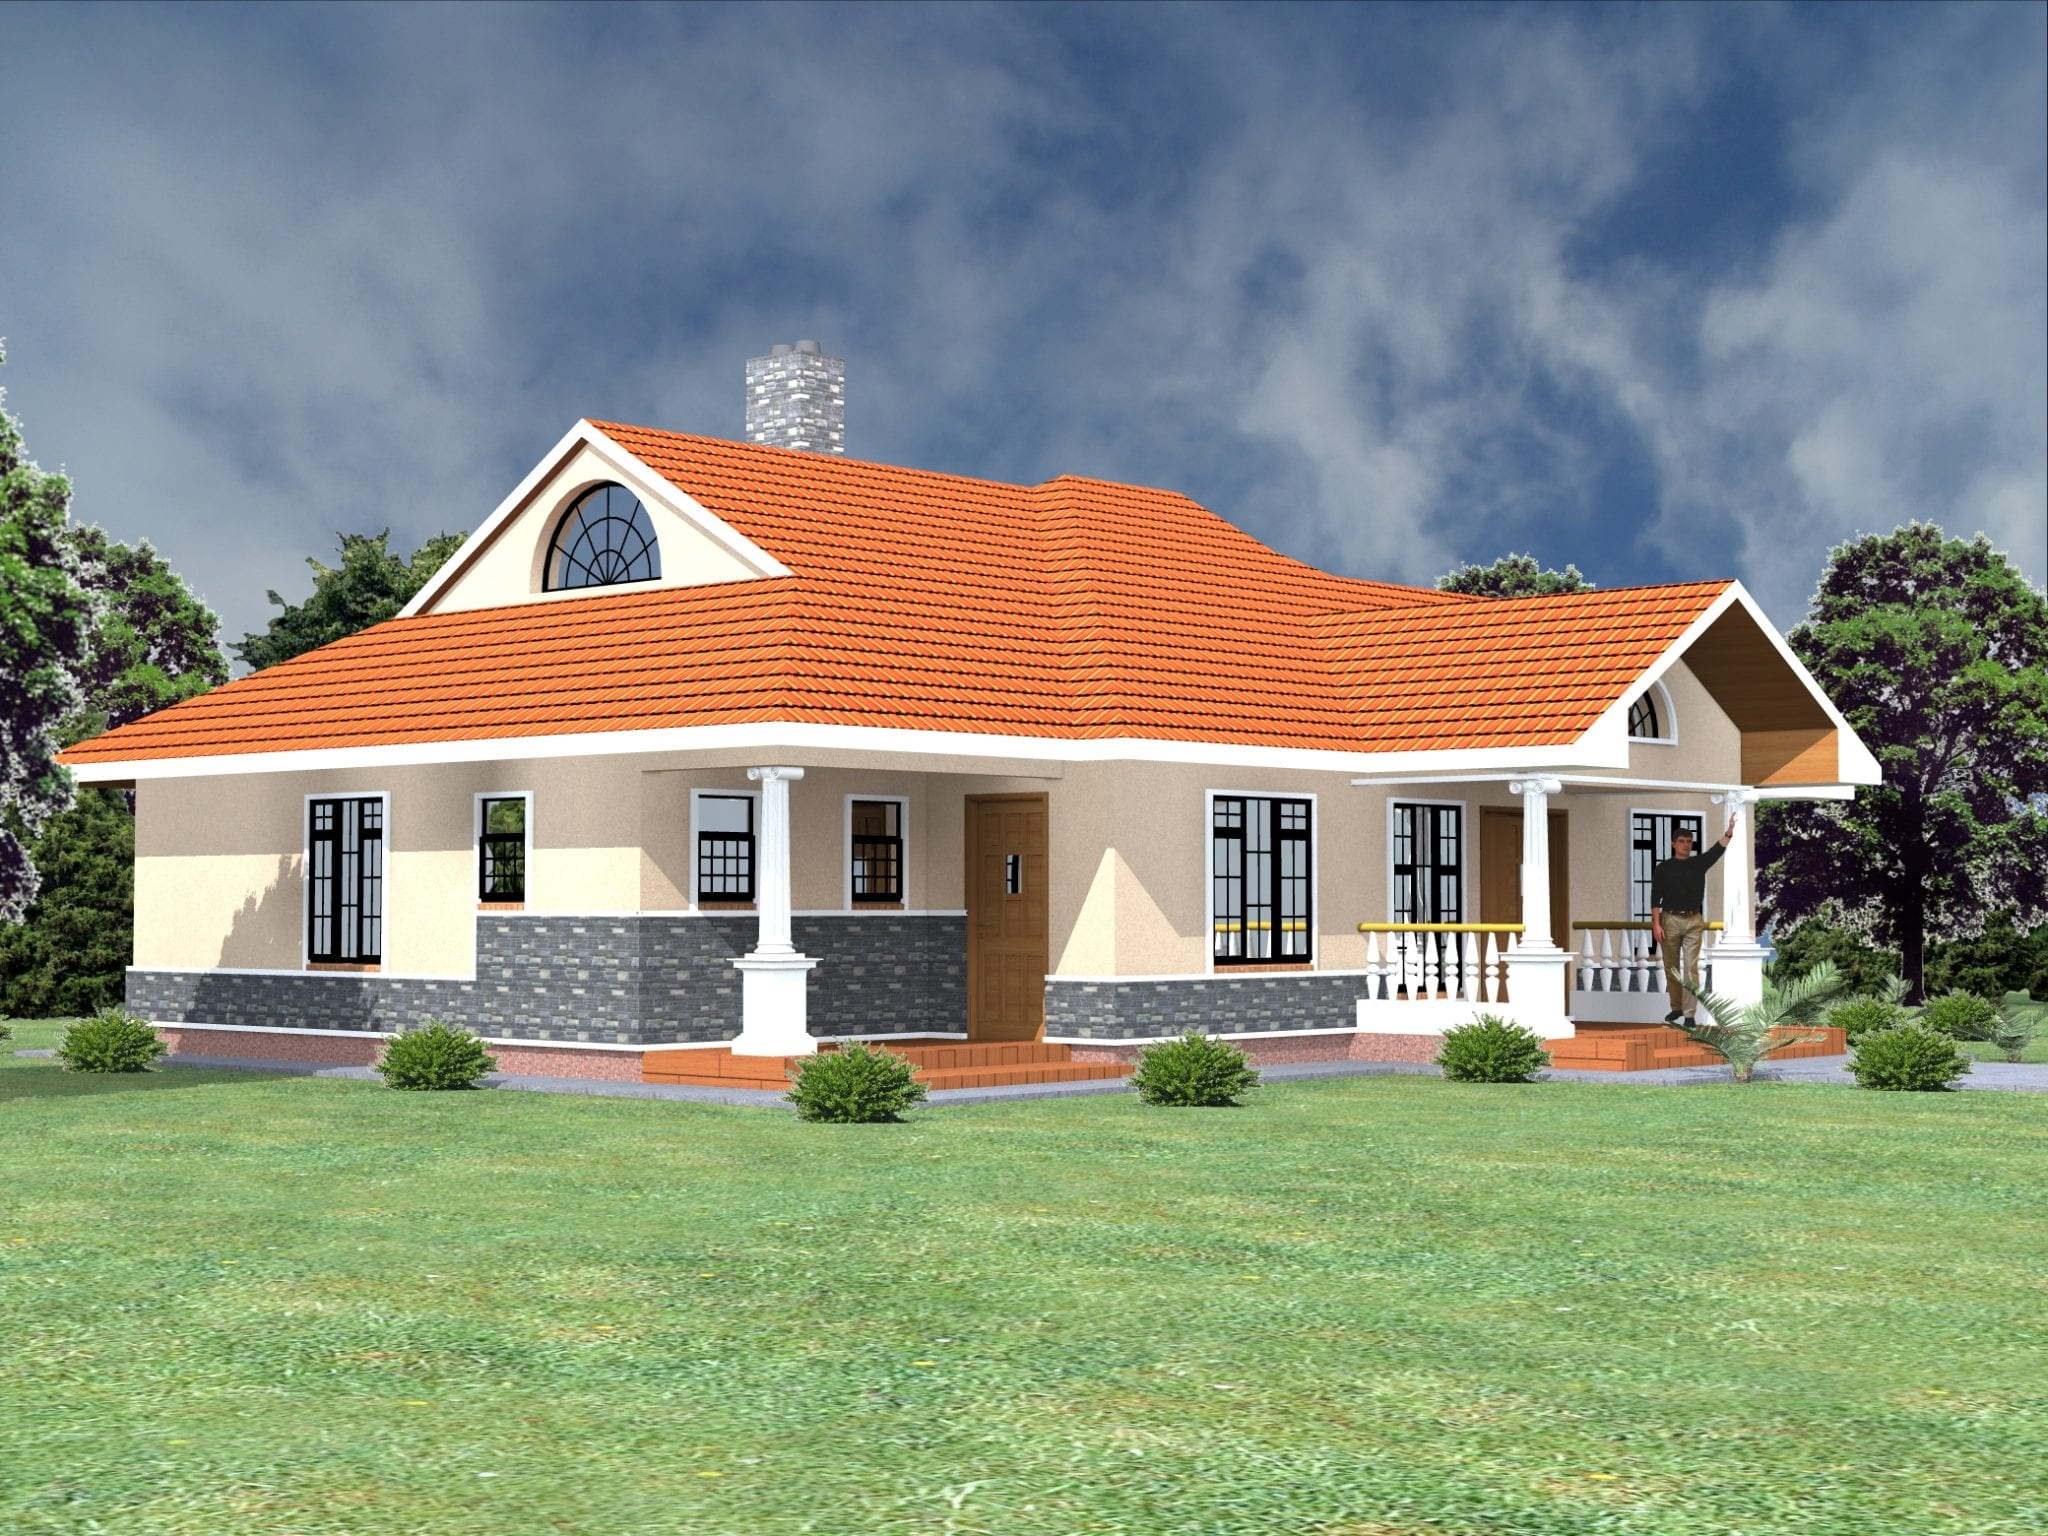 1061 B 61 RENDER 5 - 50+ Modern 3 Bedroom House Plans In Kenya  Pics